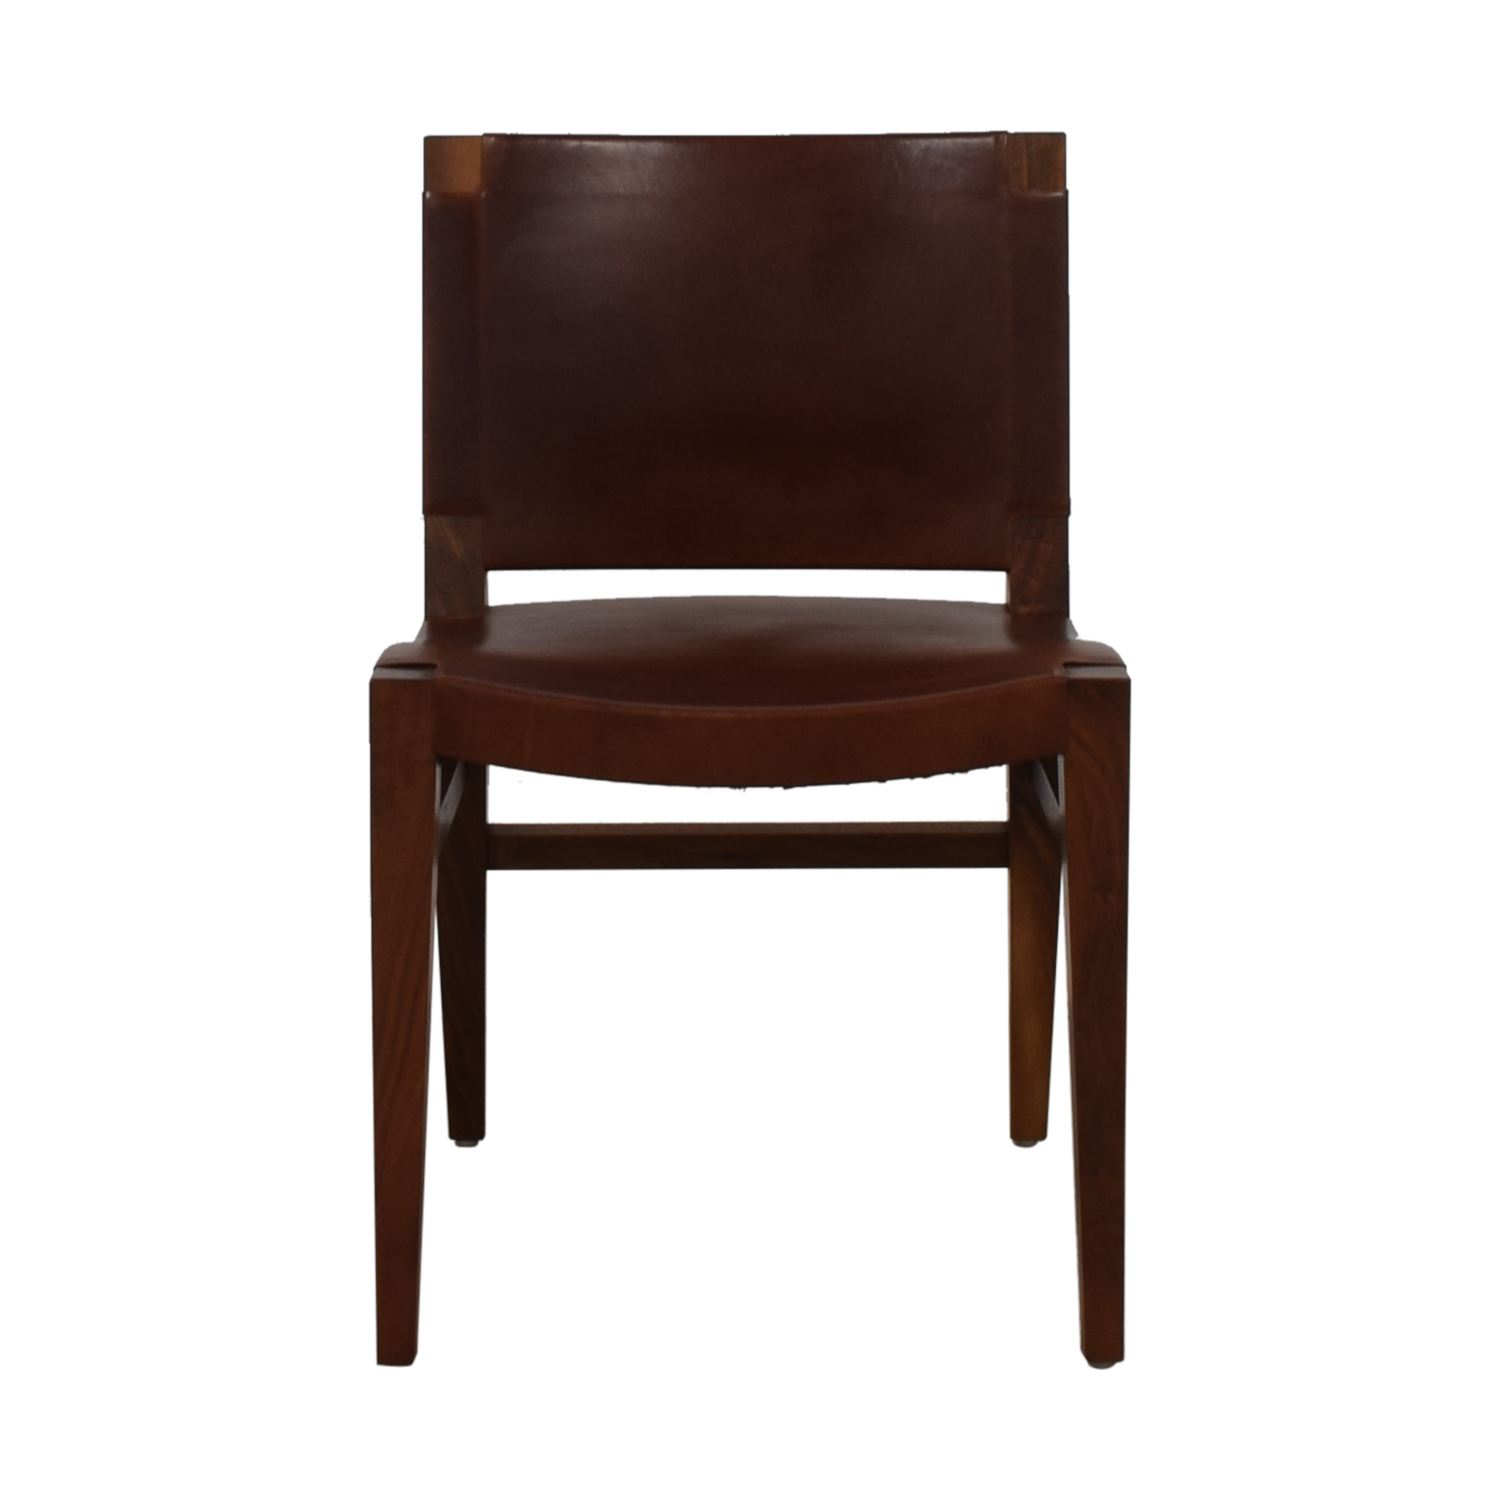 buy Furniture Masters Furniture Masters Modern Accent Chair online